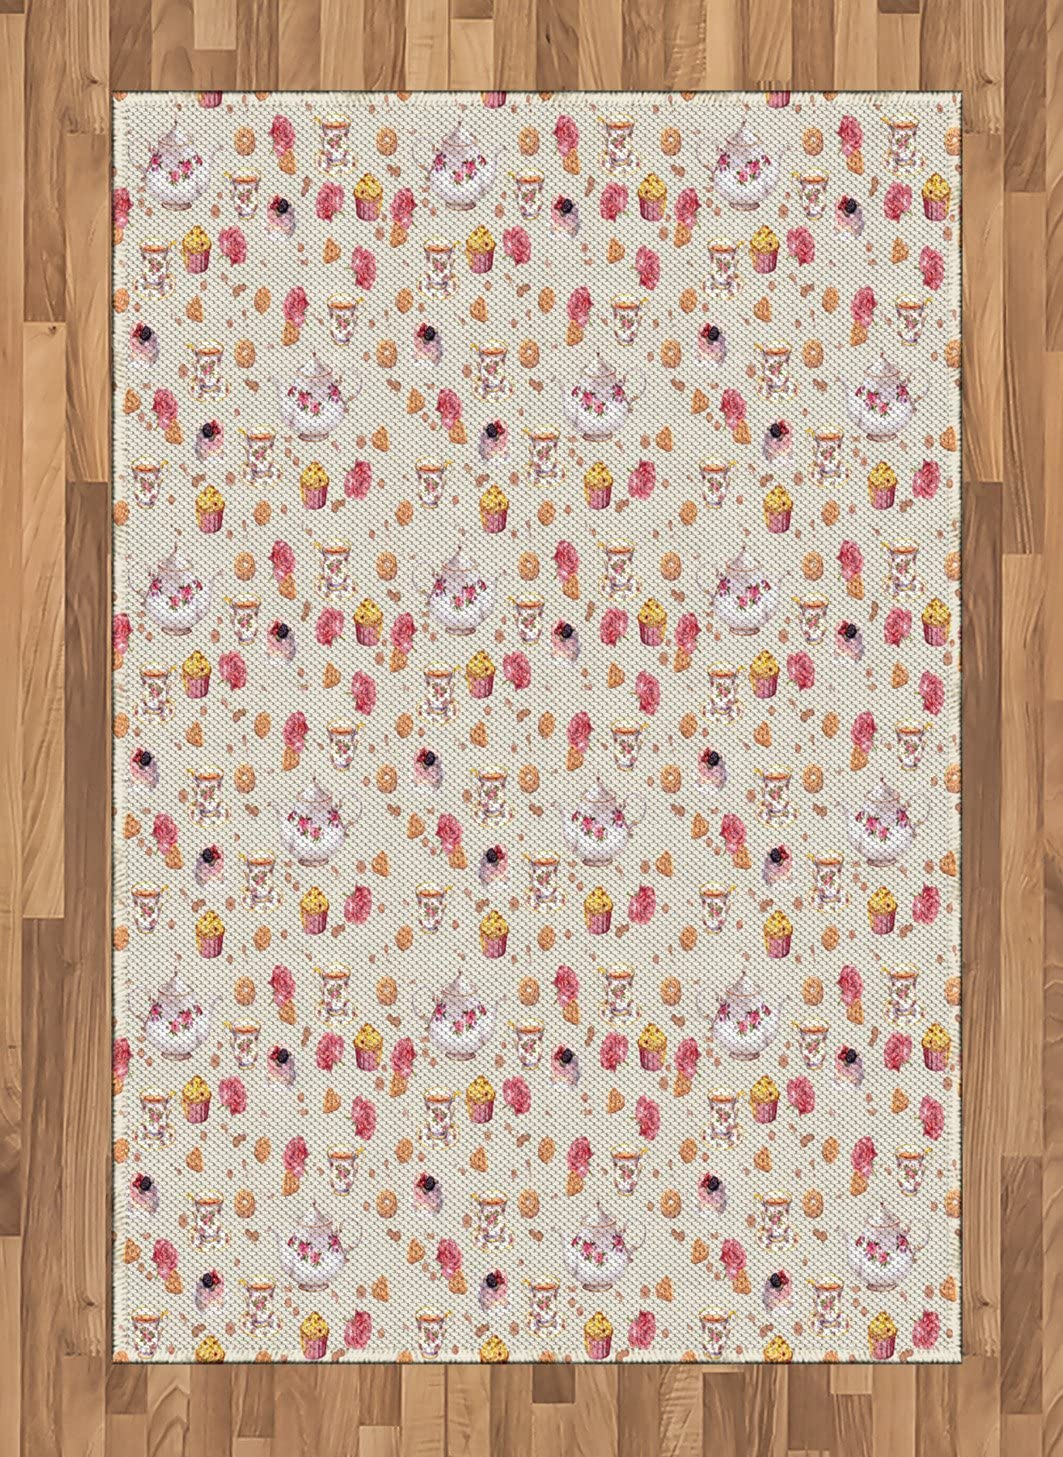 Ambesonne Vintage Area Rug, Vintage Retro Antique Tea Cups and Teapots Art Pattern Image, Flat Woven Accent Rug for Living Room Bedroom Dining Room, 4' X 5.7', Pale Pink Dark Coral and White